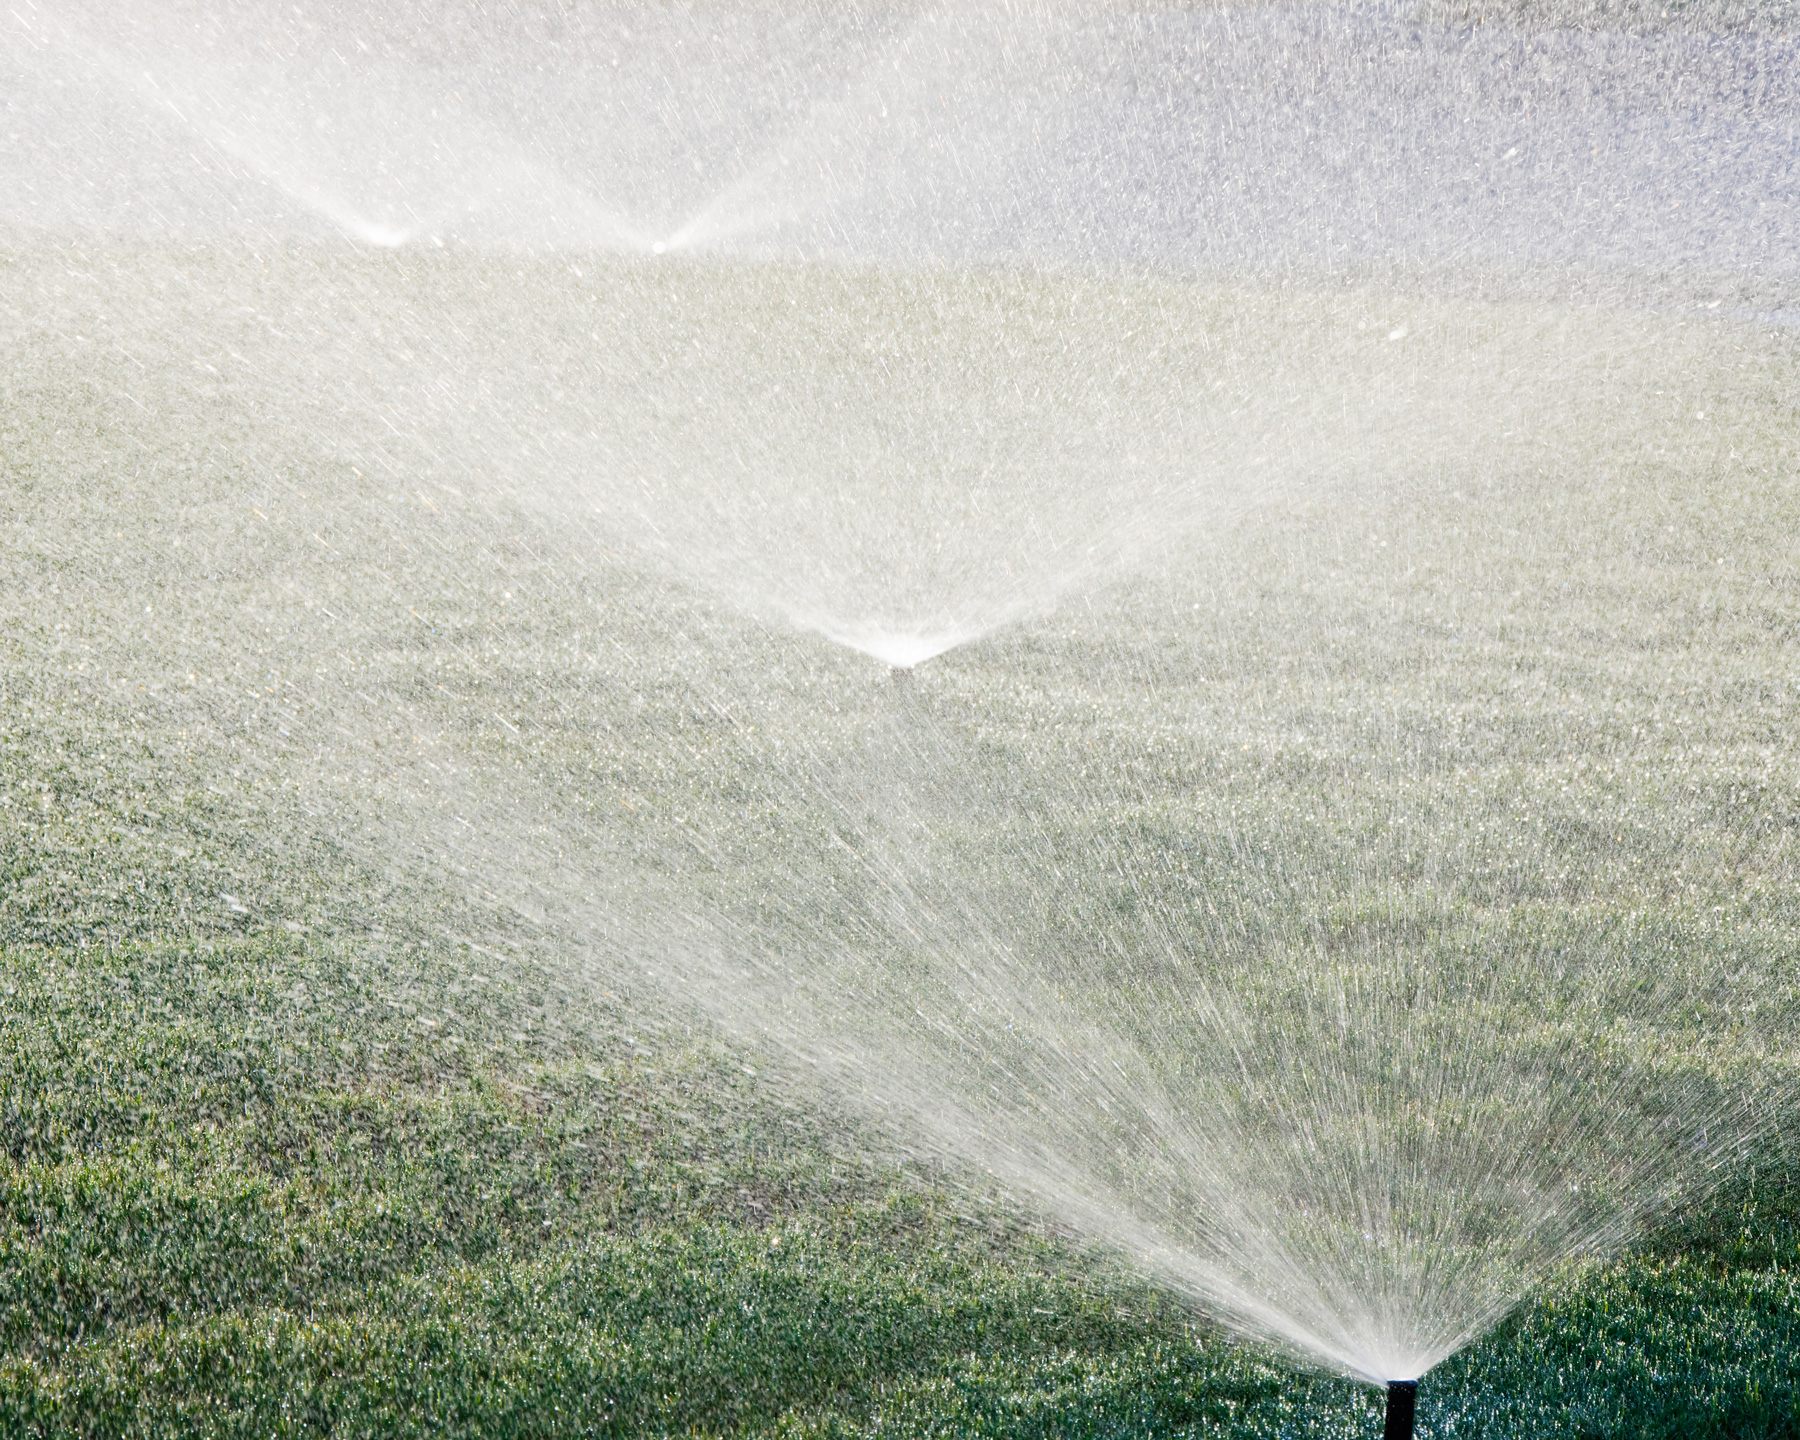 how to save water at home: water lawn in the morning or evening when it's cool out